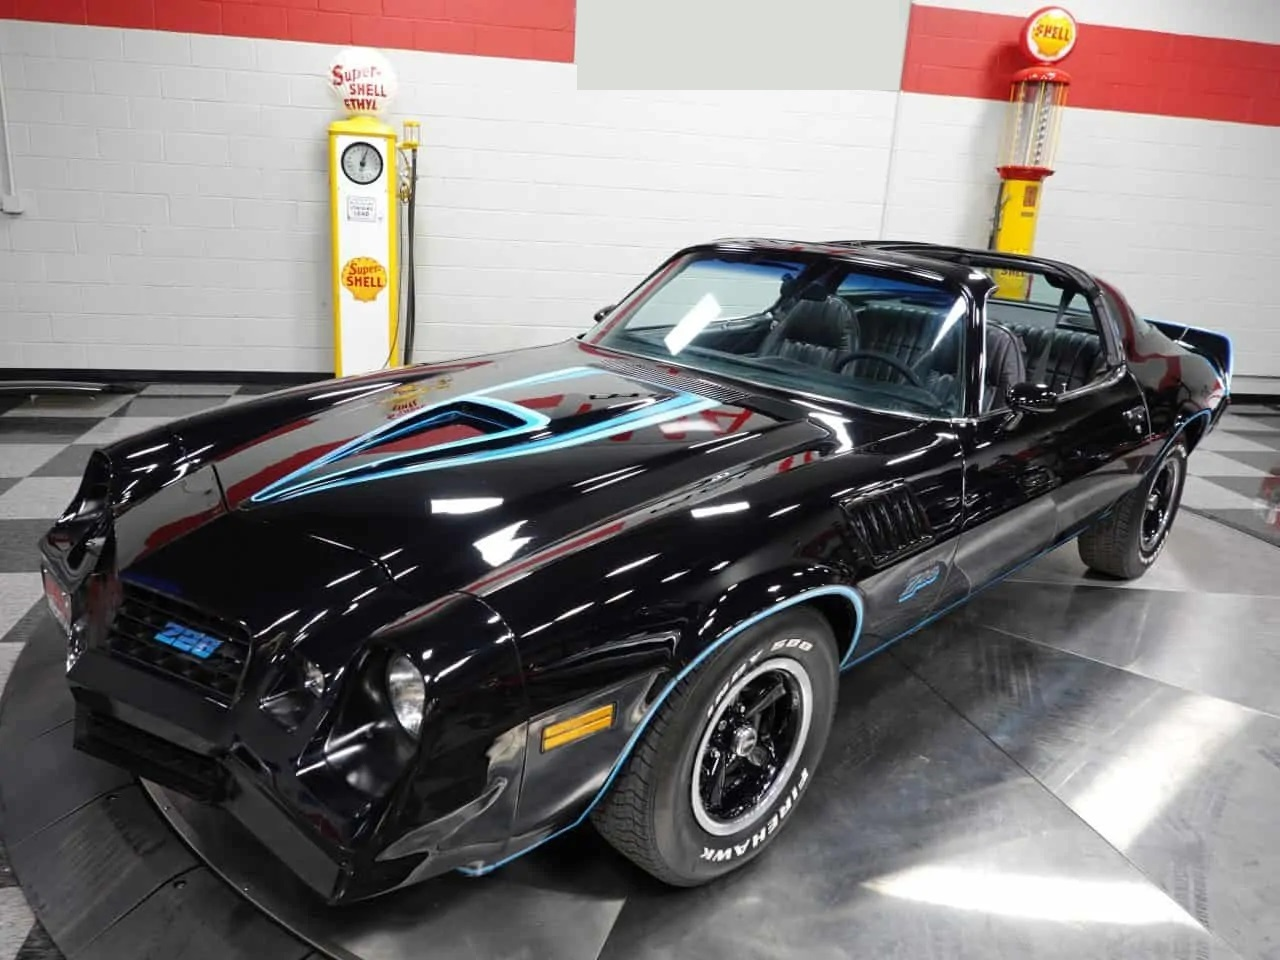 Camaro Z28 T-Tops Berger 350 ci V8 Automatique 197834 249€